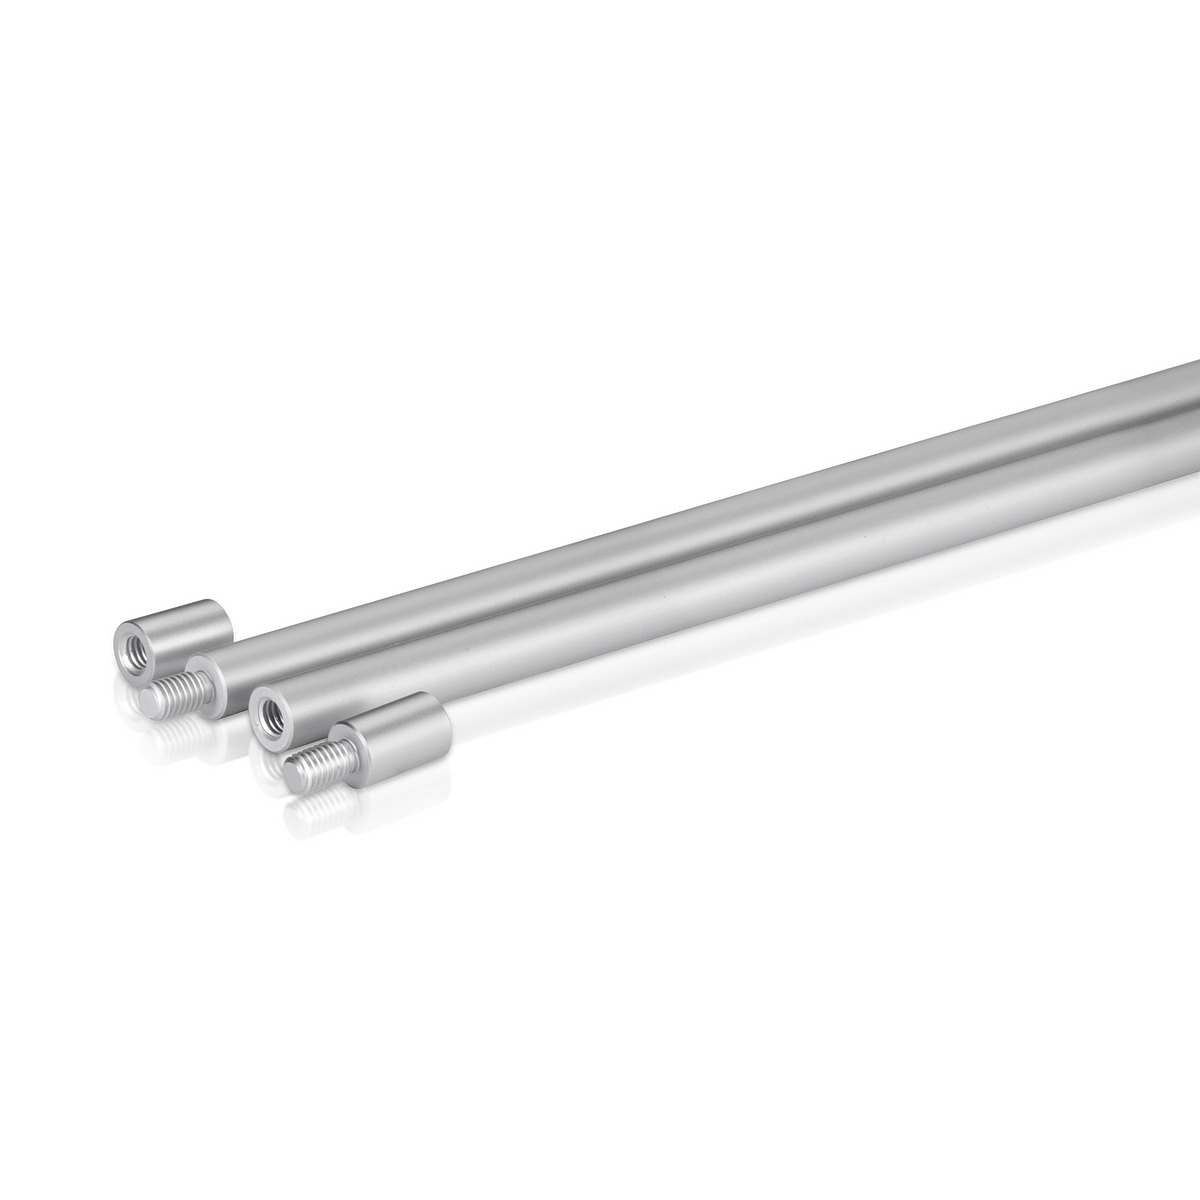 3/8'' Aluminum Clear Anodized 3/8'' Diameter Rod, Length: 36'', Reverse Thread  (Inside use only)